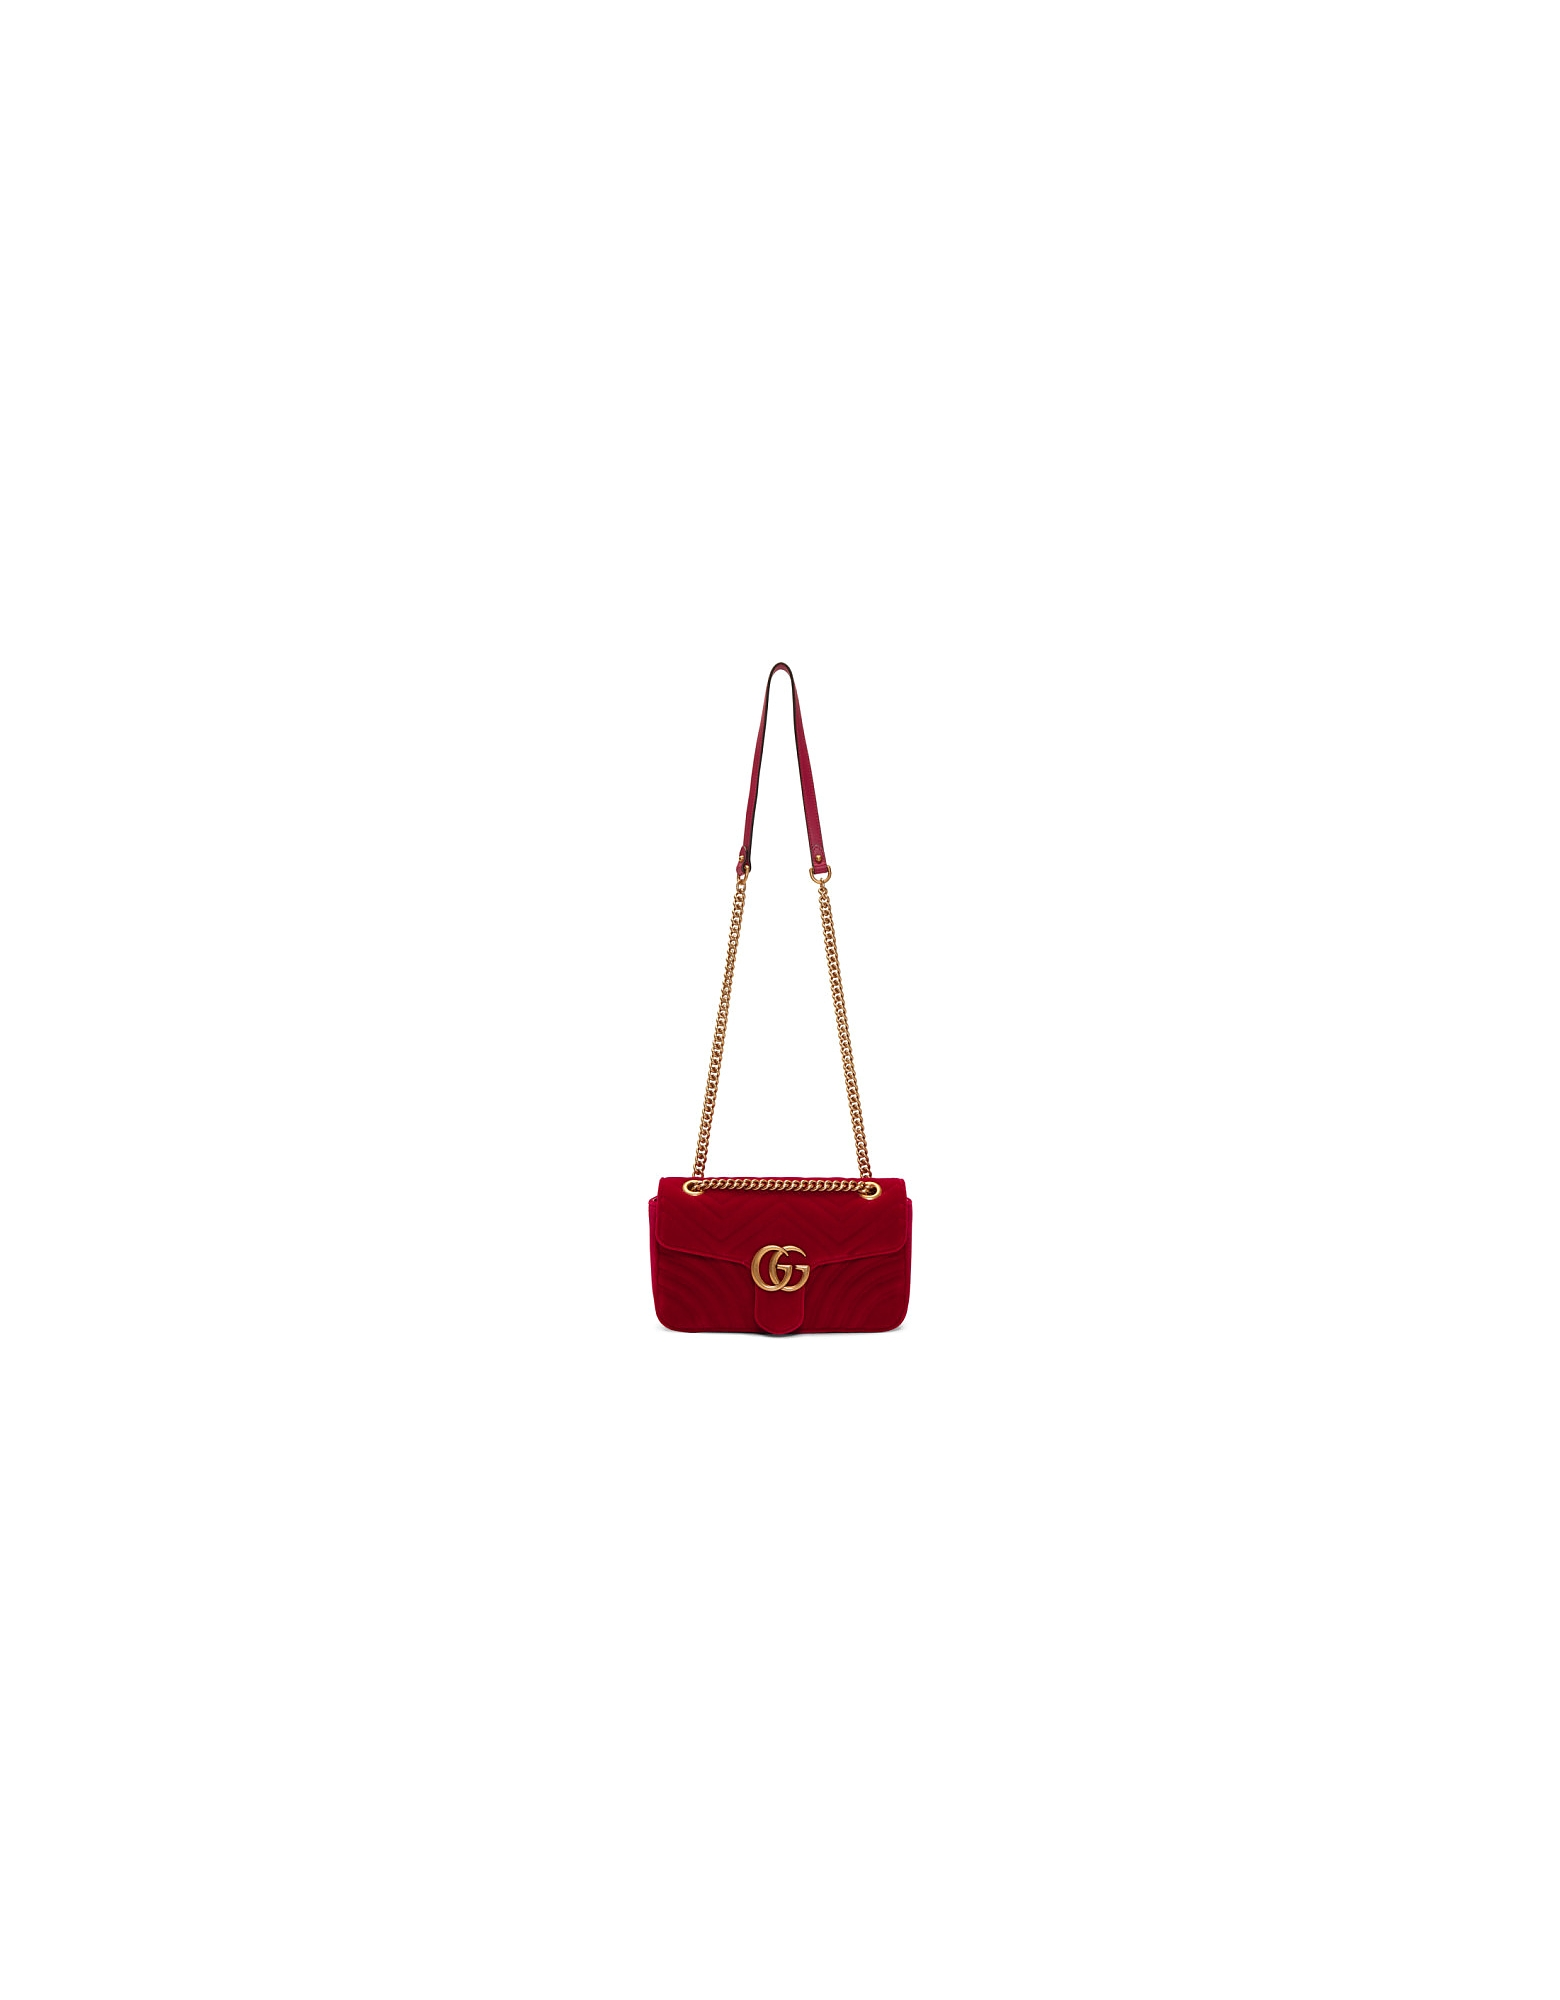 Gucci Designer Handbags, Red Velvet Small GG Marmont 2.0 Bag